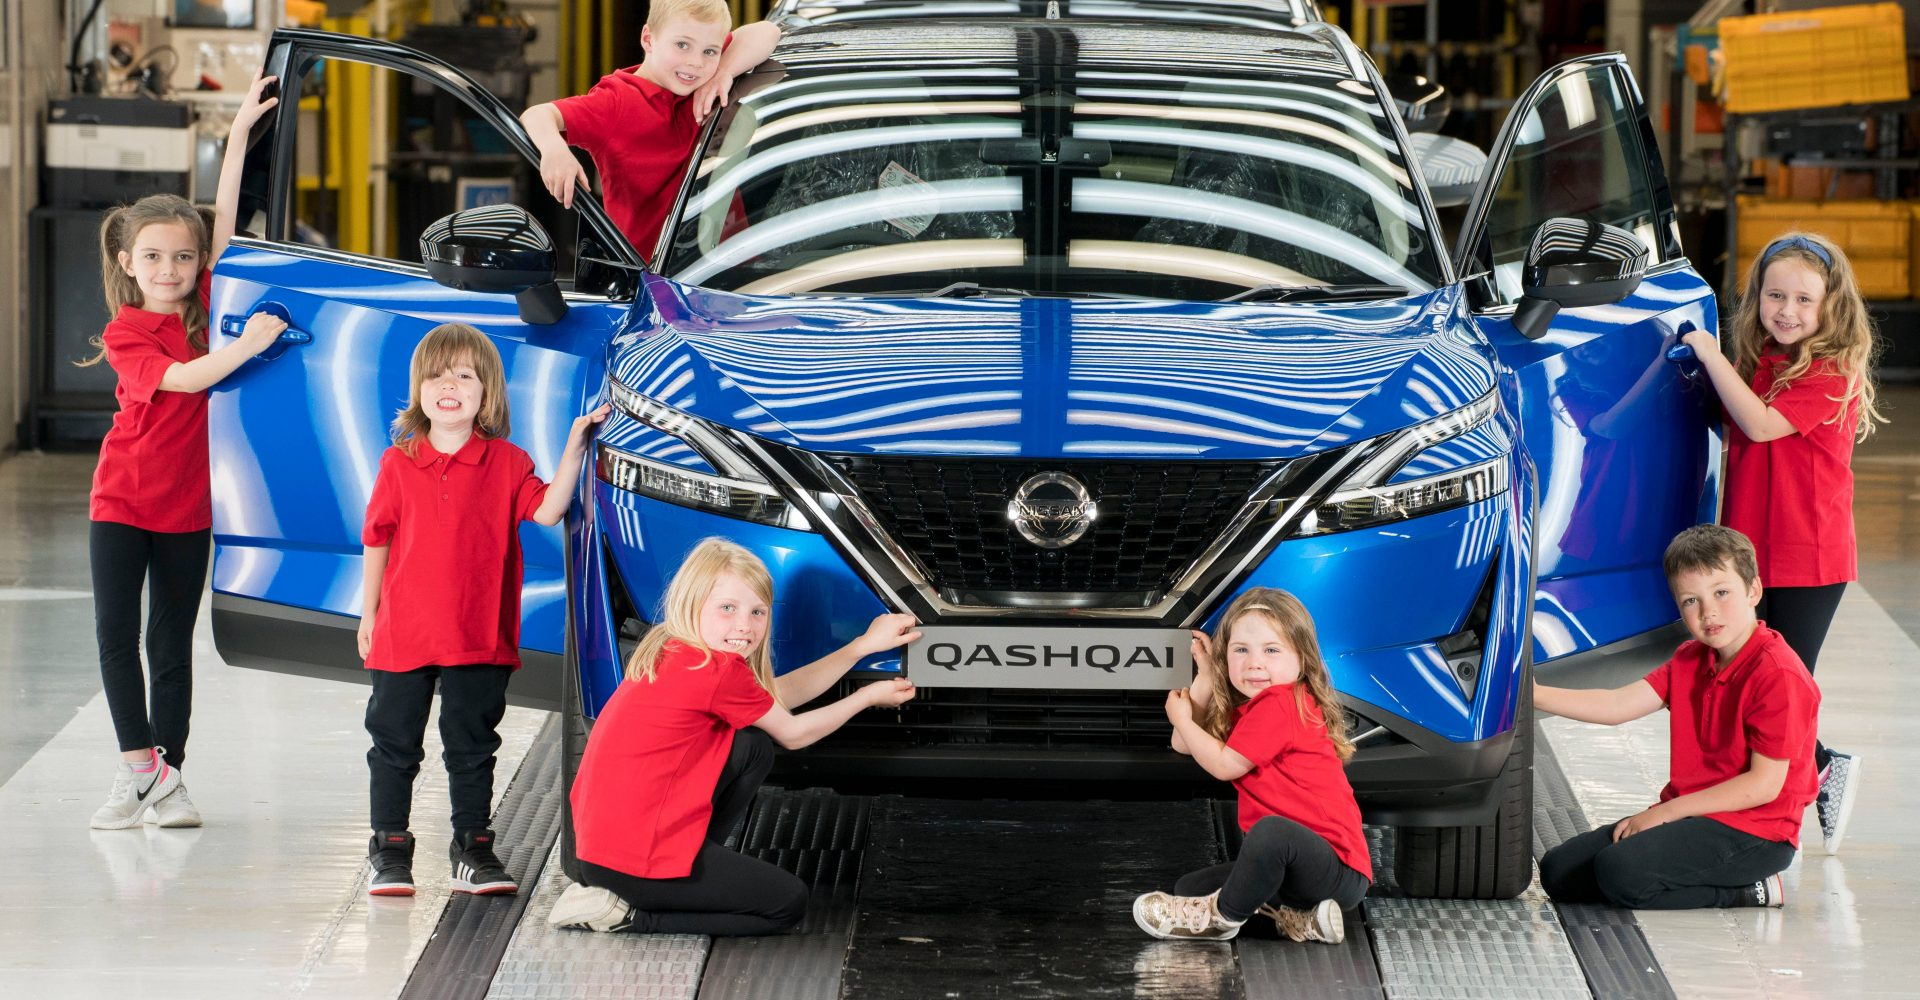 Nissan celebrates production of new Qashqai in Sunderland with skills experience for school children